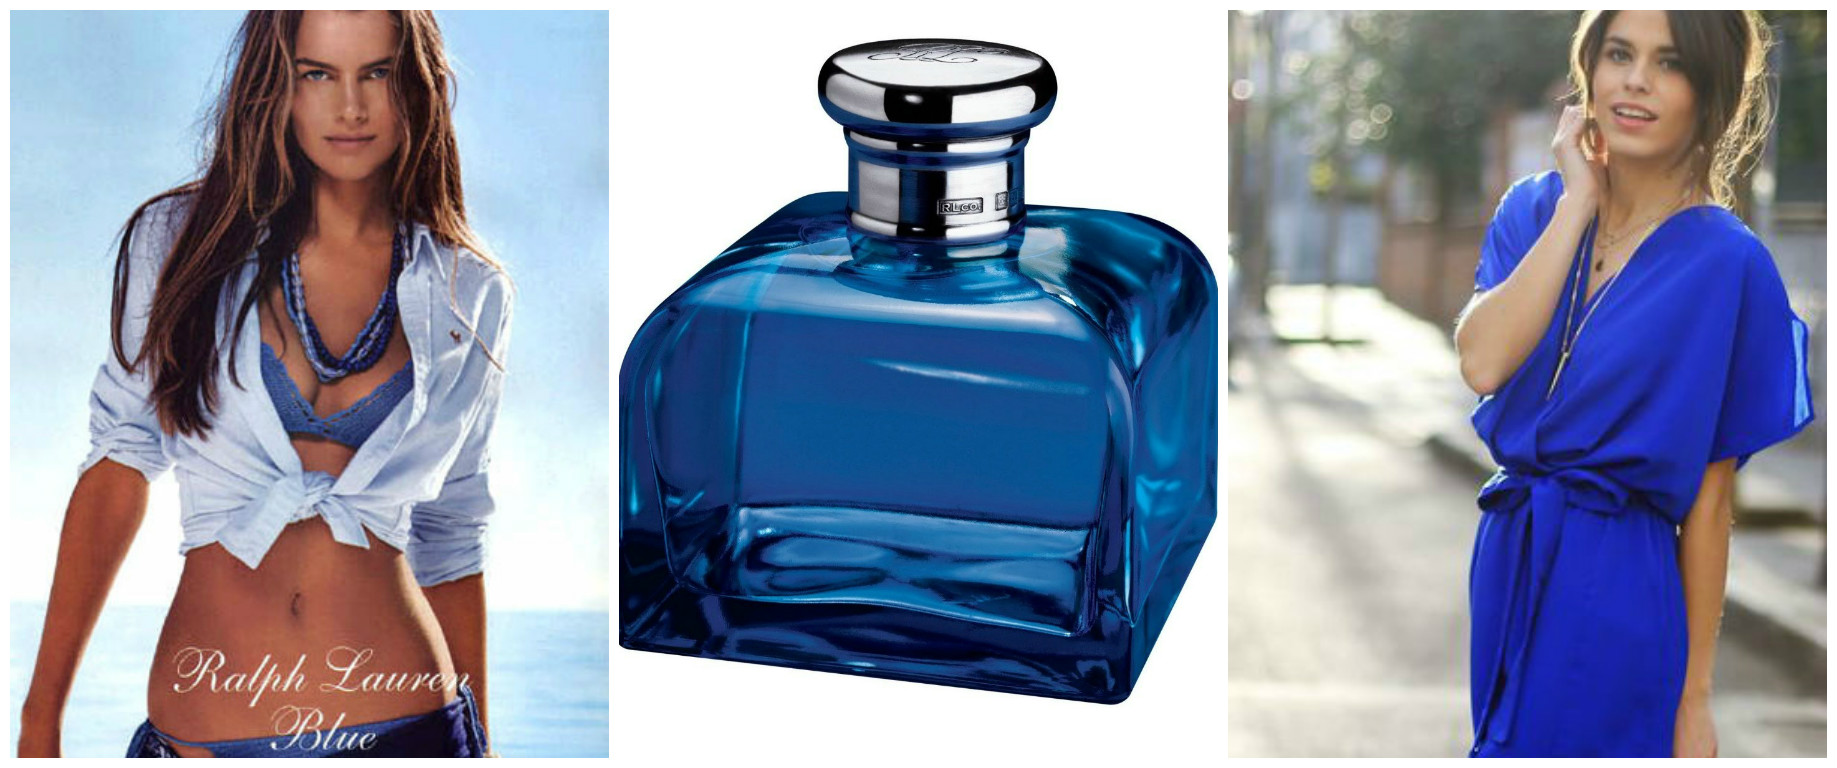 Perfume of the Day:  Blue by Ralph Lauren